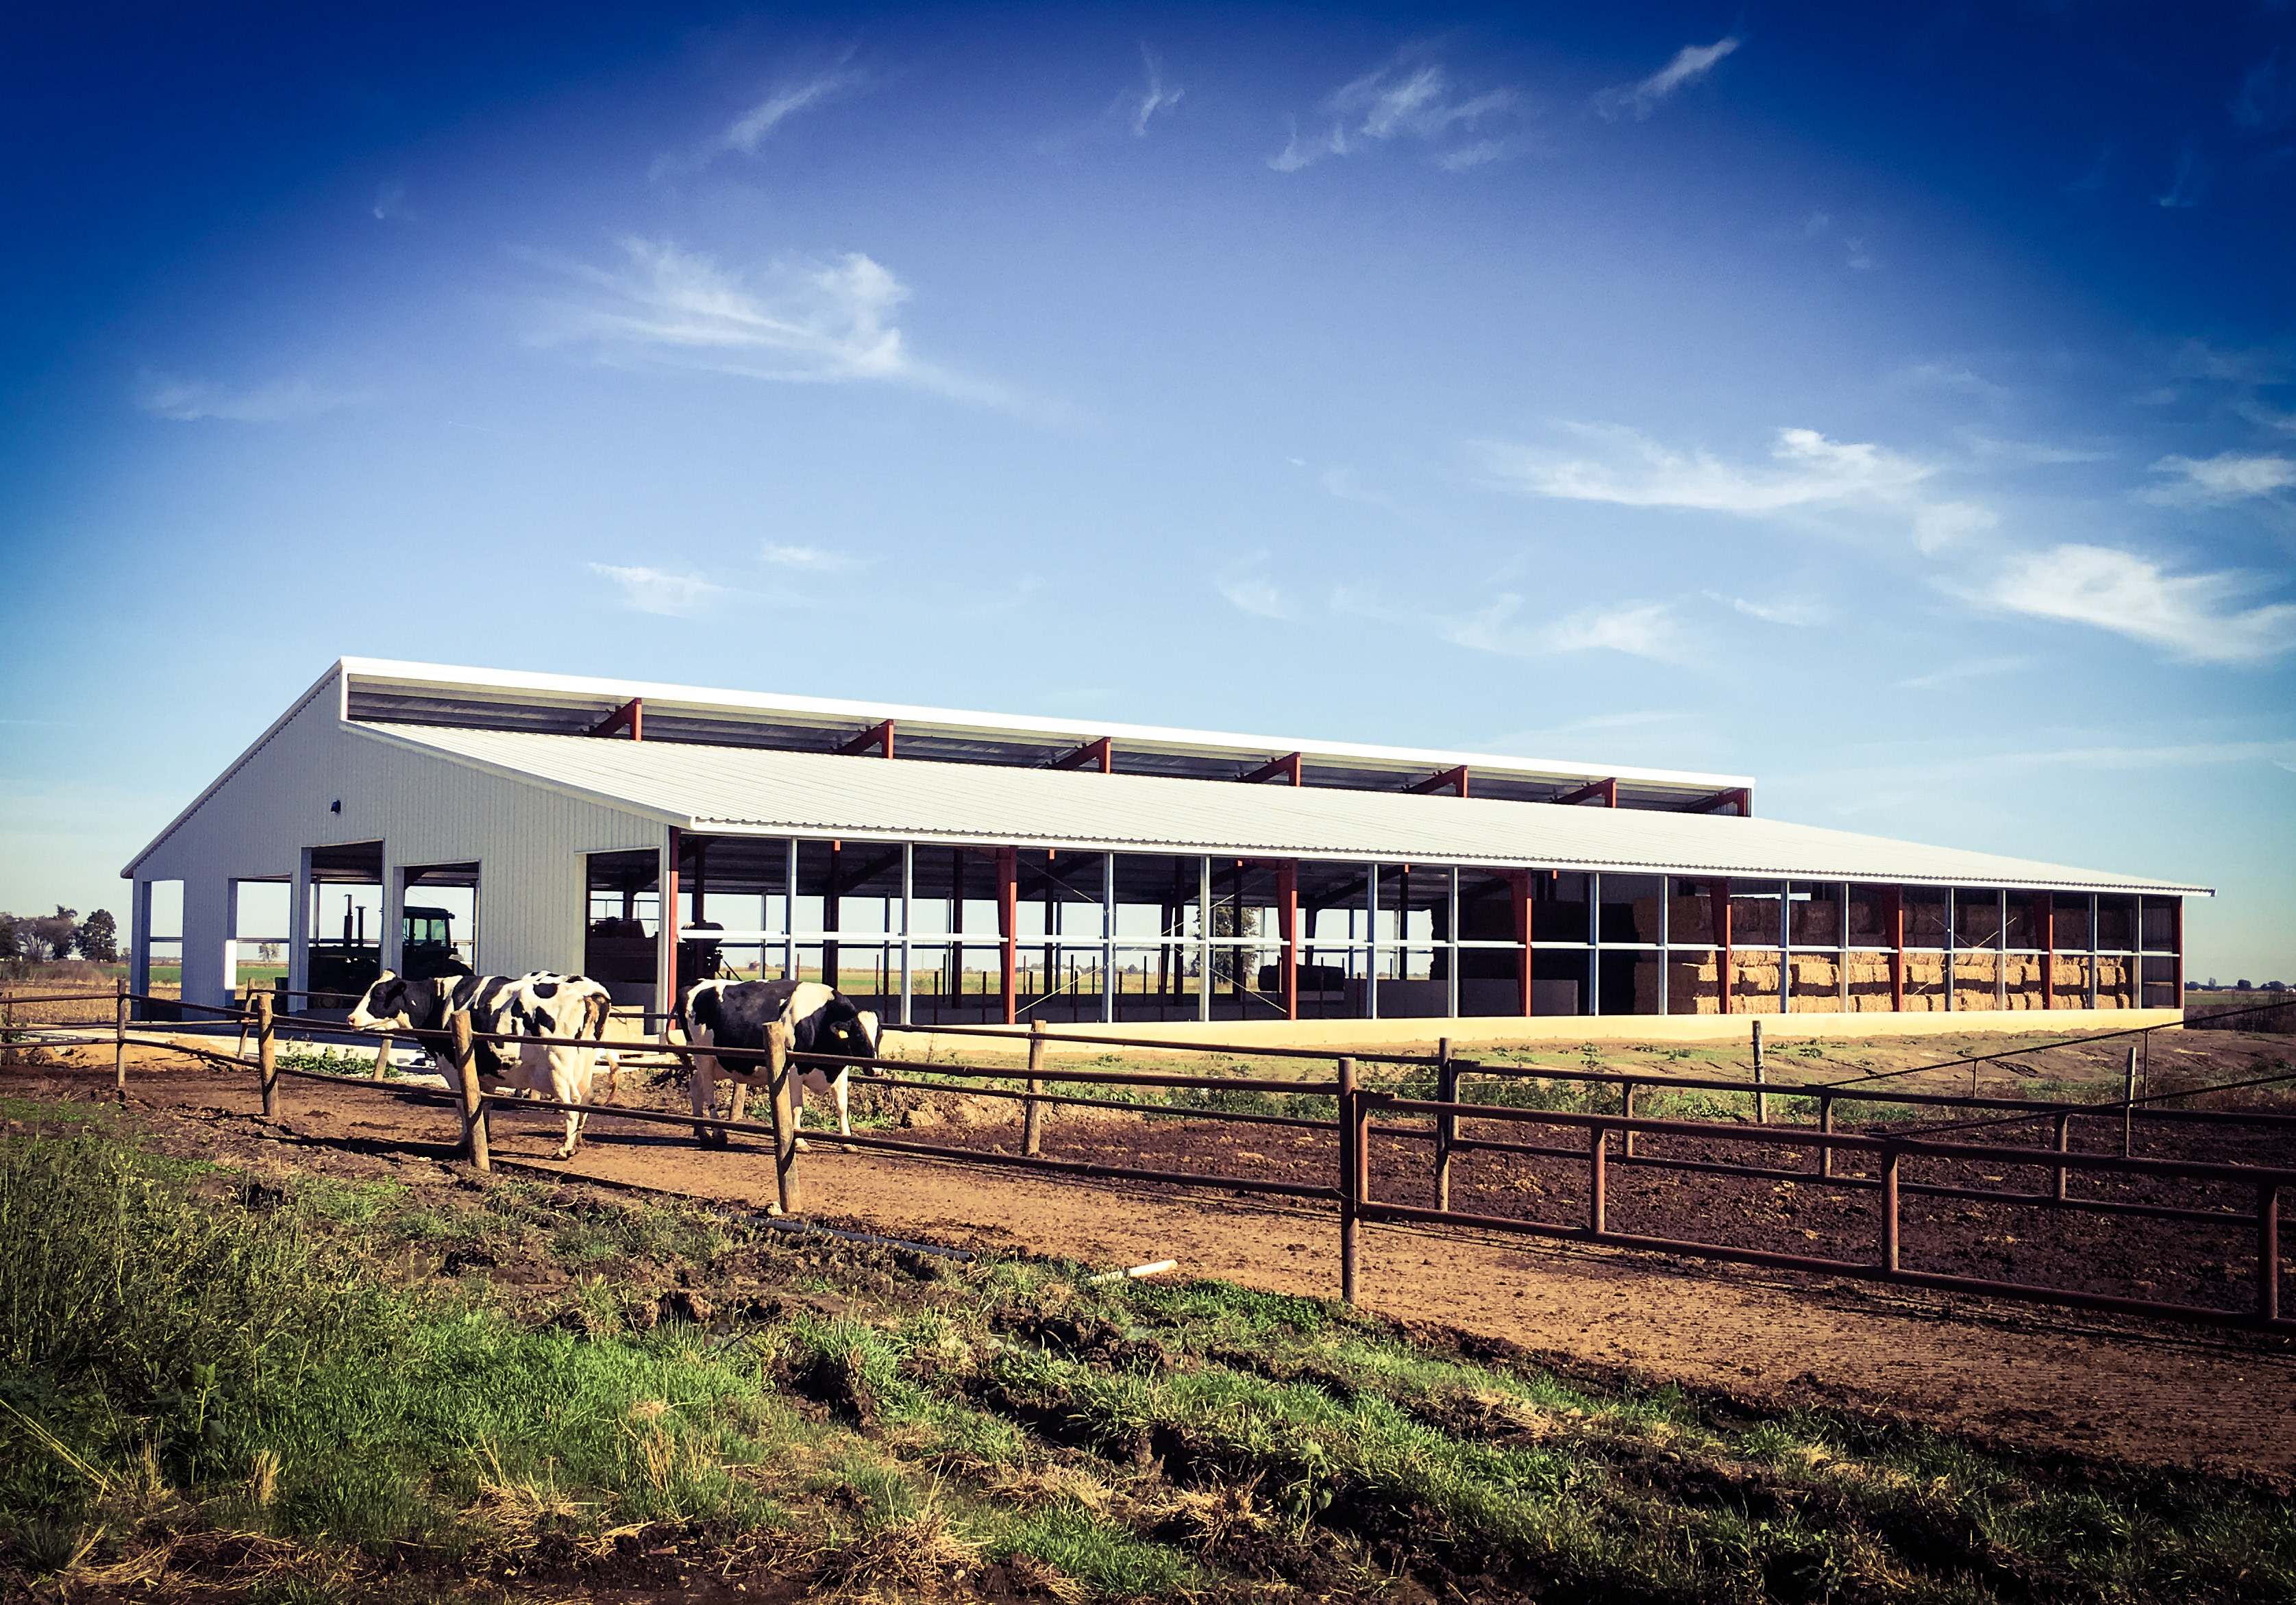 Cattle Barn projects